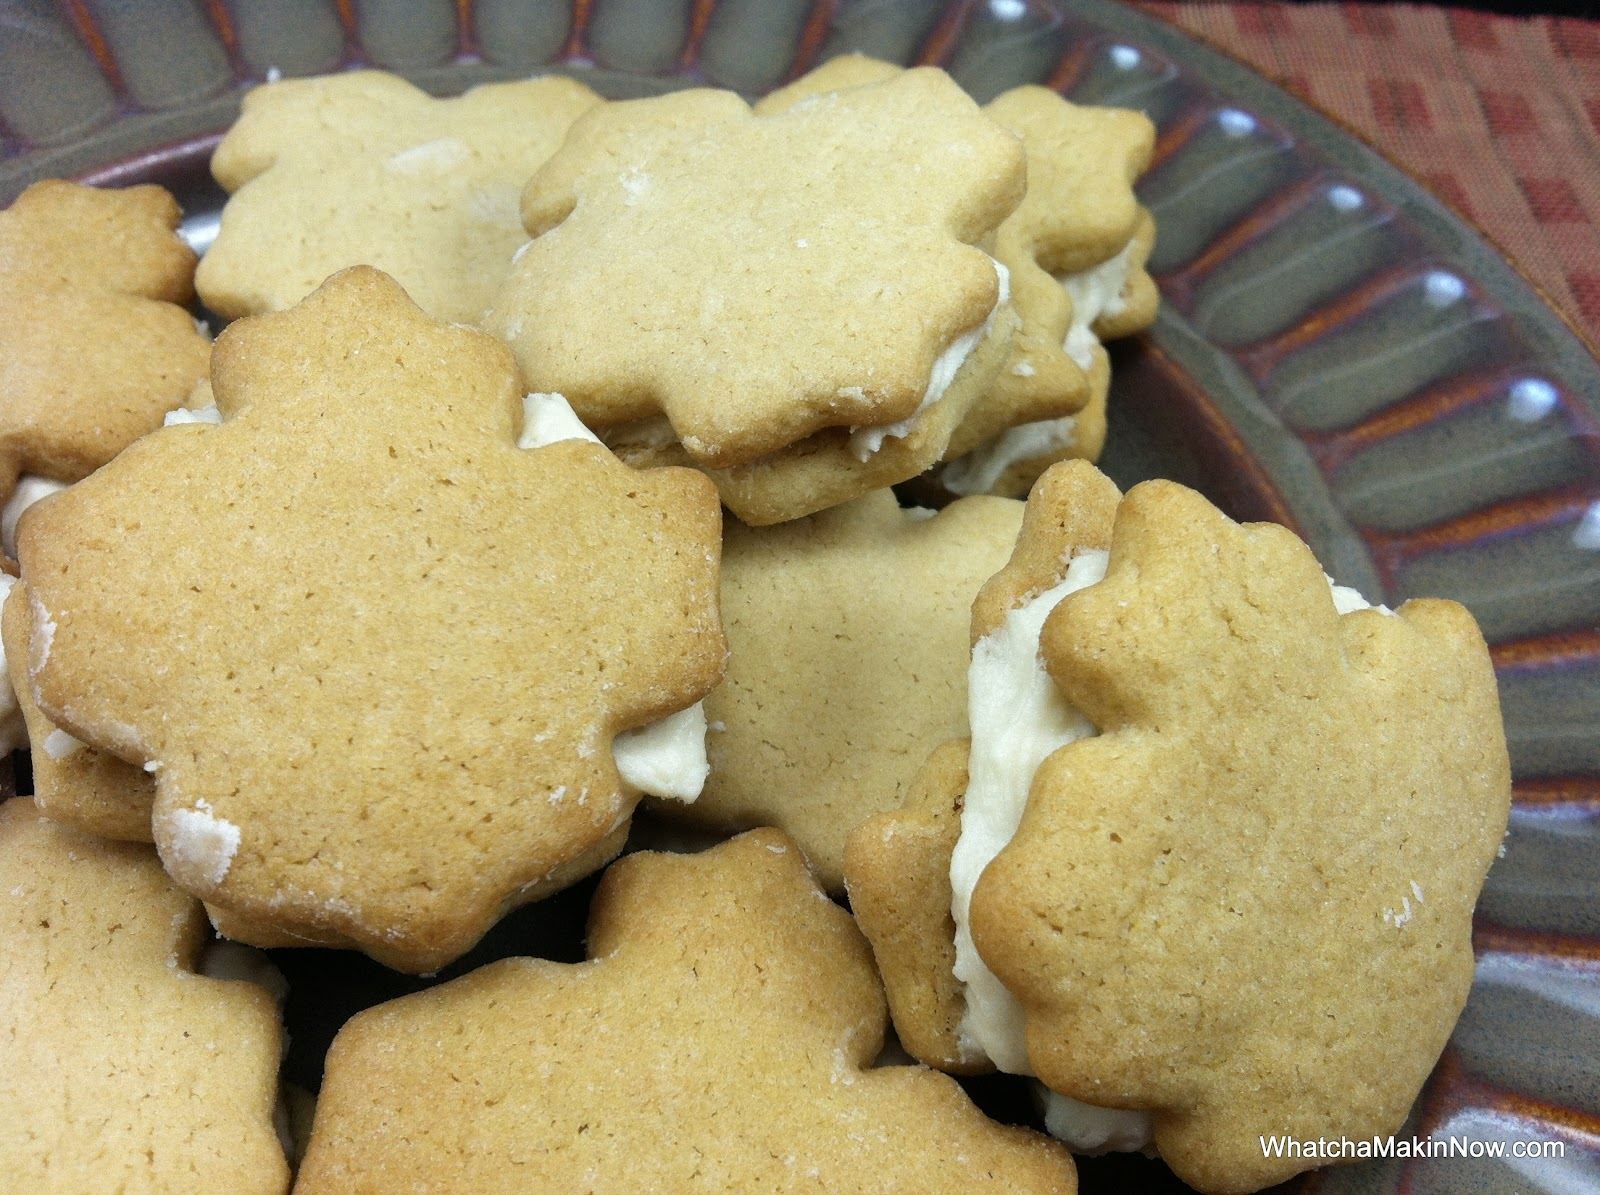 Whatcha Makin' Now?: Maple Cookies with Maple Frosting